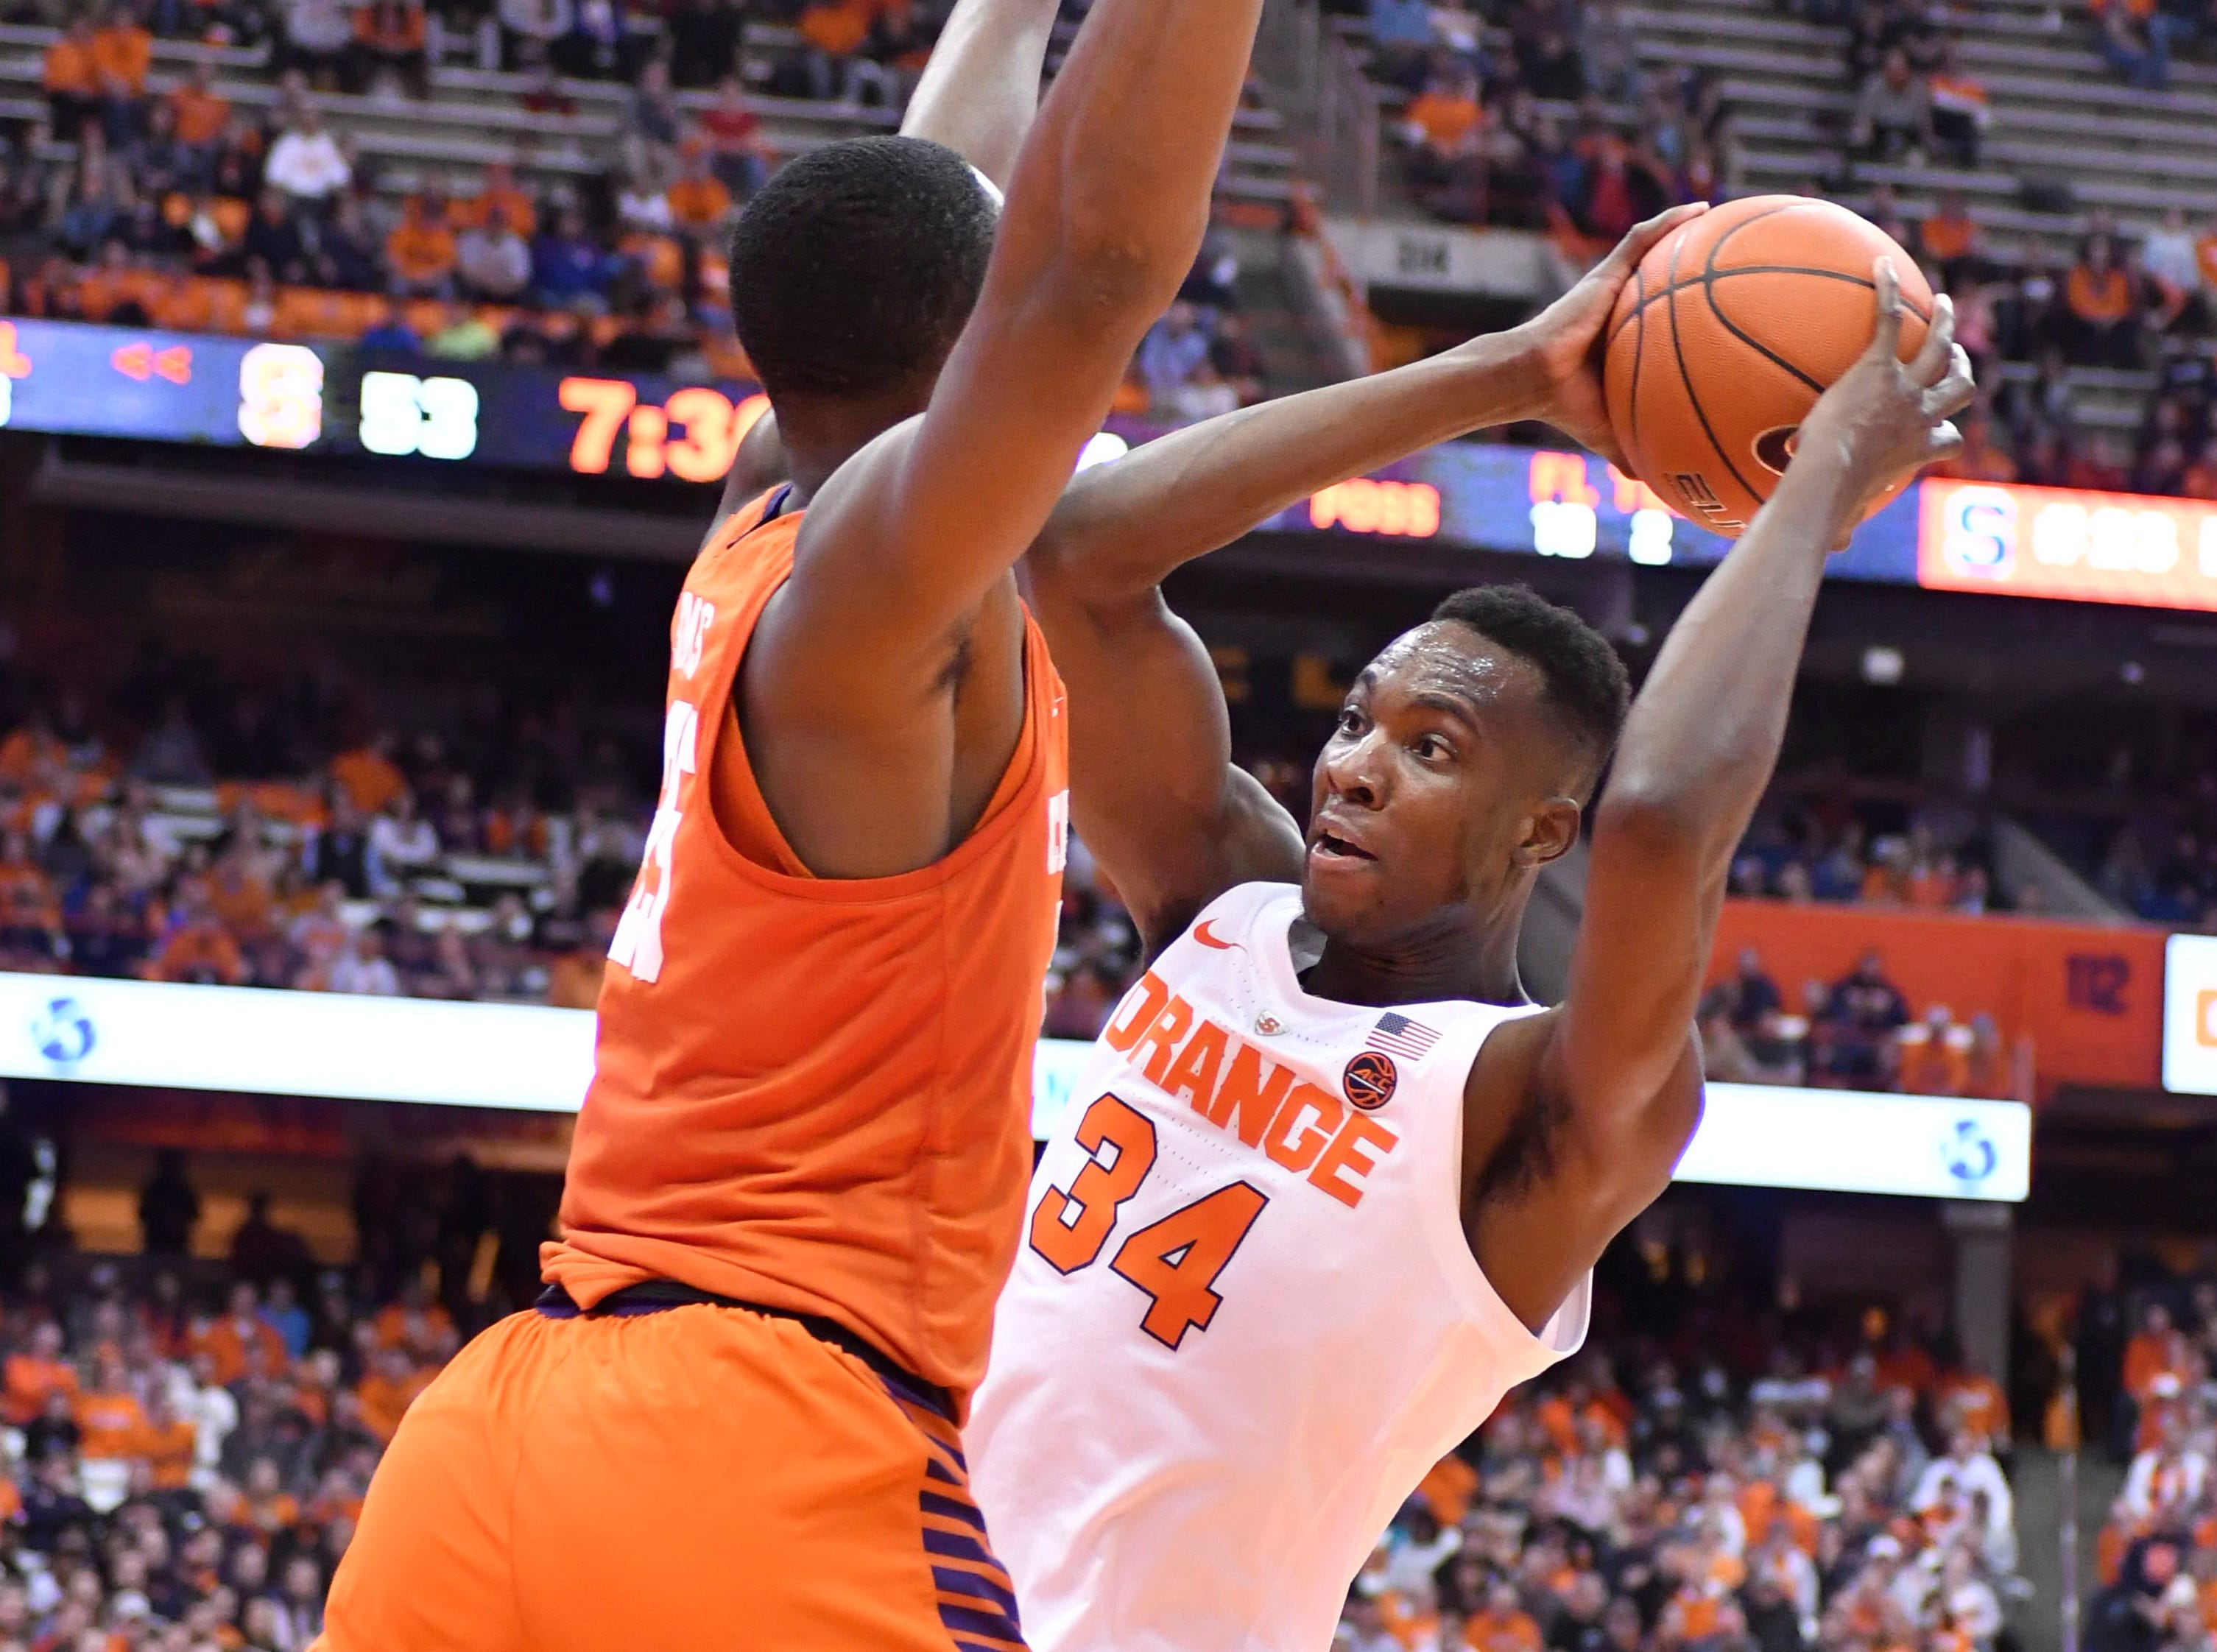 Jan 9, 2019; Syracuse, NY, USA; Syracuse Orange forward Bourama Sidibe (34) is pressured by Clemson Tigers forward Aamir Simms (25) in the second half at the Carrier Dome.